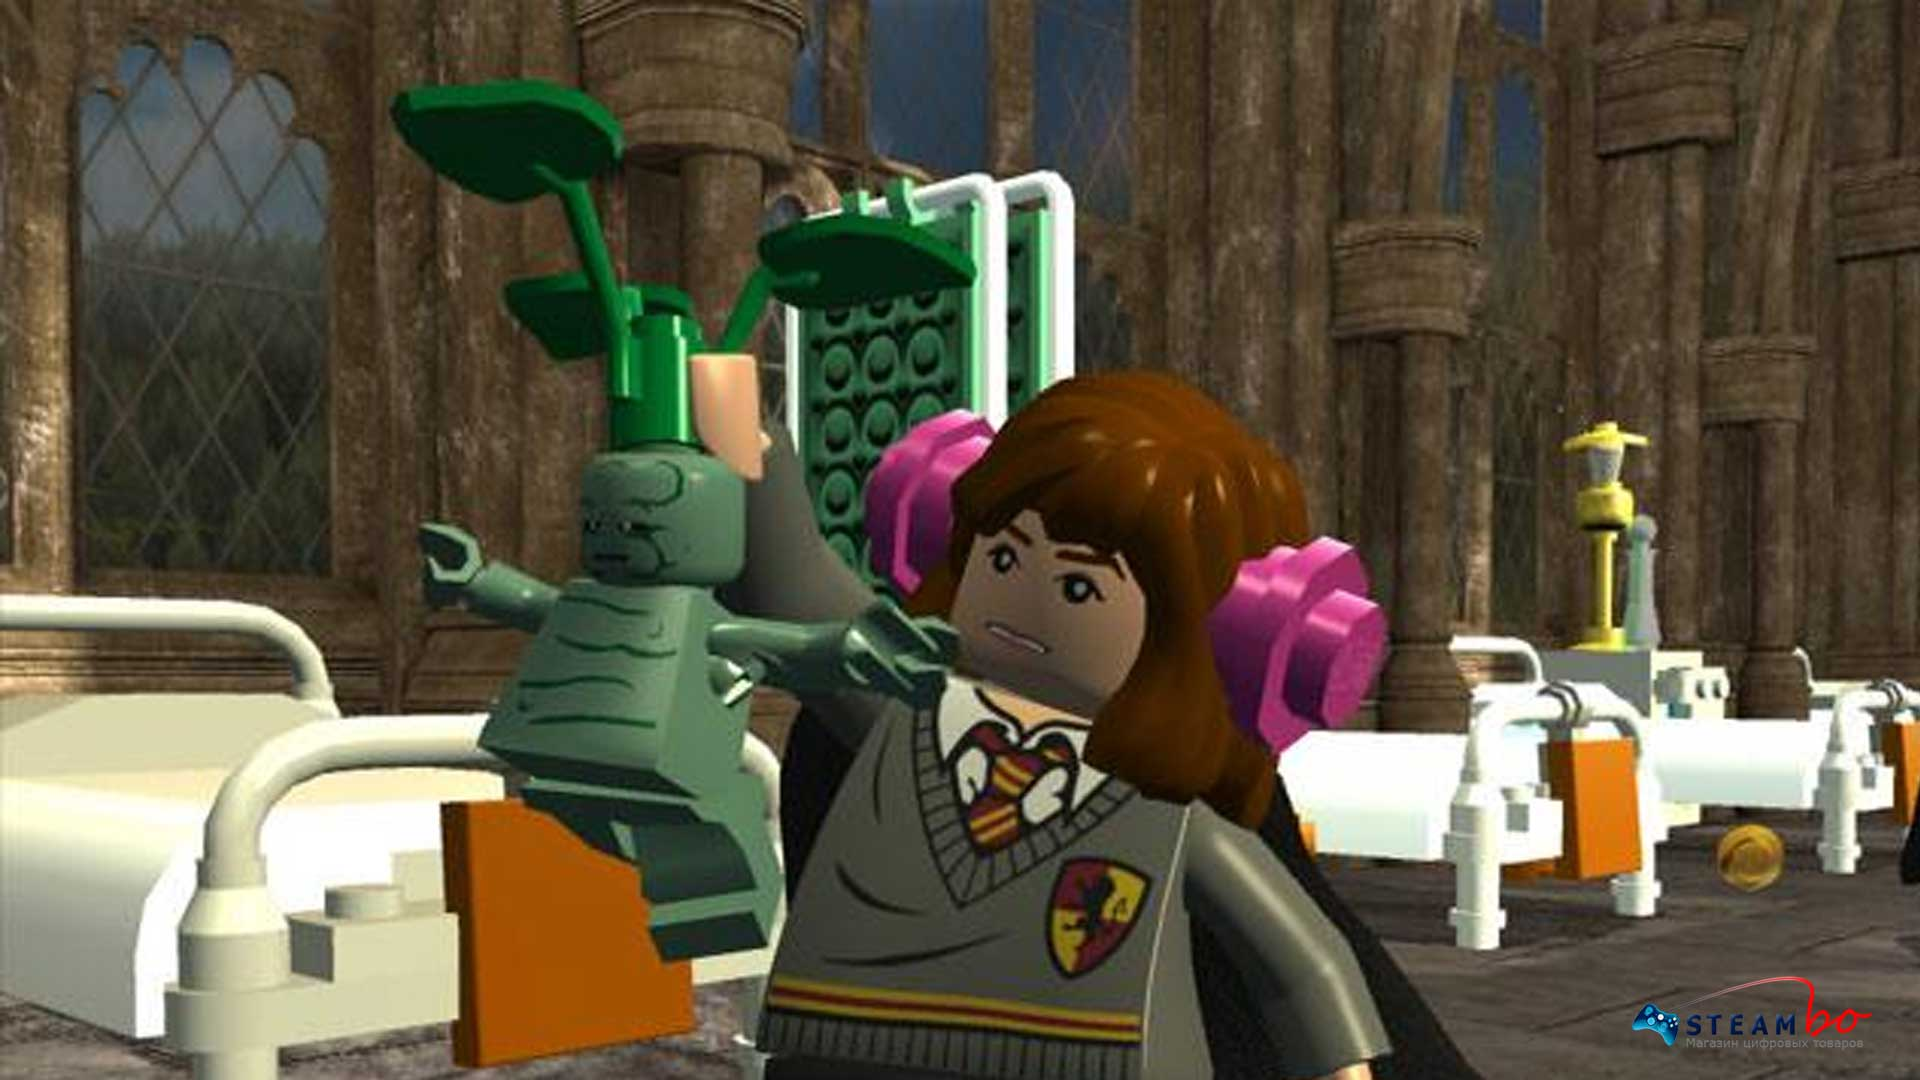 LEGO Harry Potter Years 1-4 ROW (Steam Gift/Key)